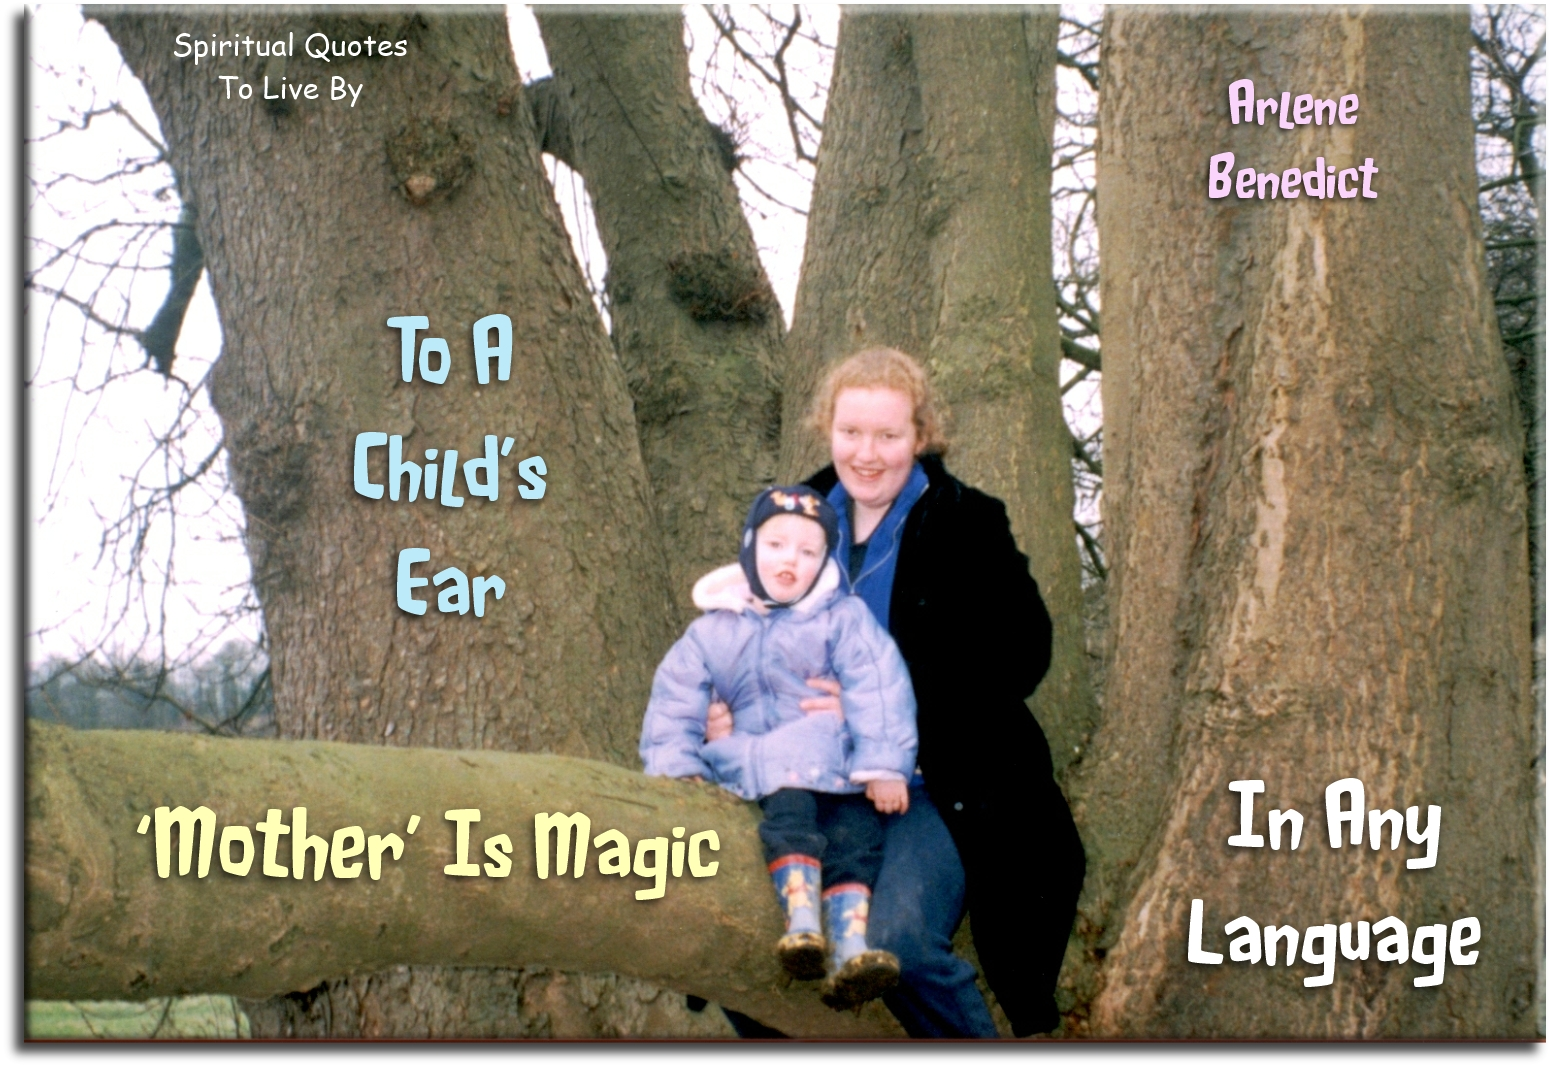 Arlene Benedict quote: To a child's ear, 'Mother' is magic in any language. - Spiritual Quotes To Live By